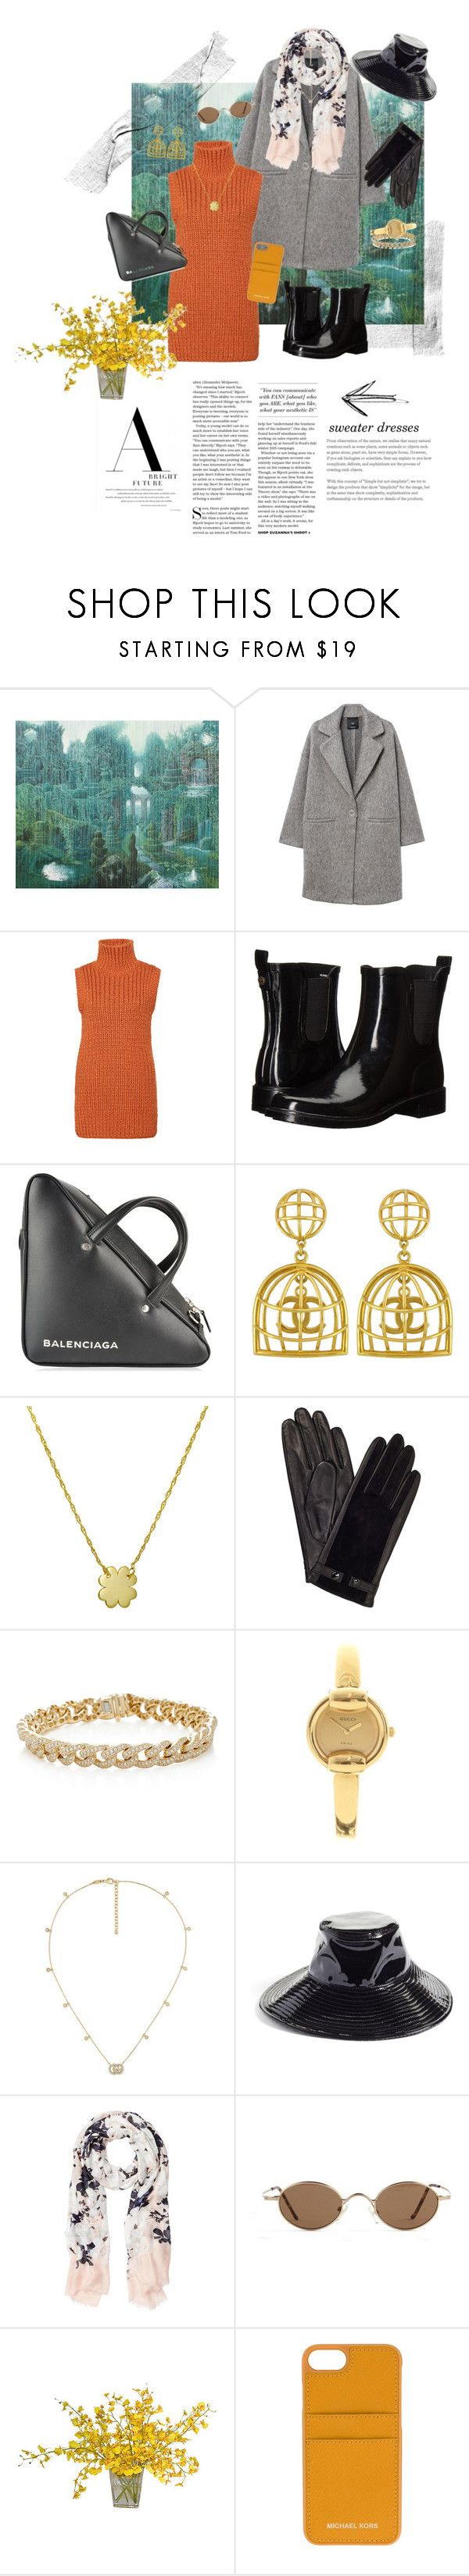 """""""Sweater Envy"""" by ninasinclair ❤ liked on Polyvore featuring MANGO, Tory Burch, Balenciaga, Vintage, Amanda Rose Collection, John Lewis, Sydney Evan, Gucci, Eric Javits and Witchery"""